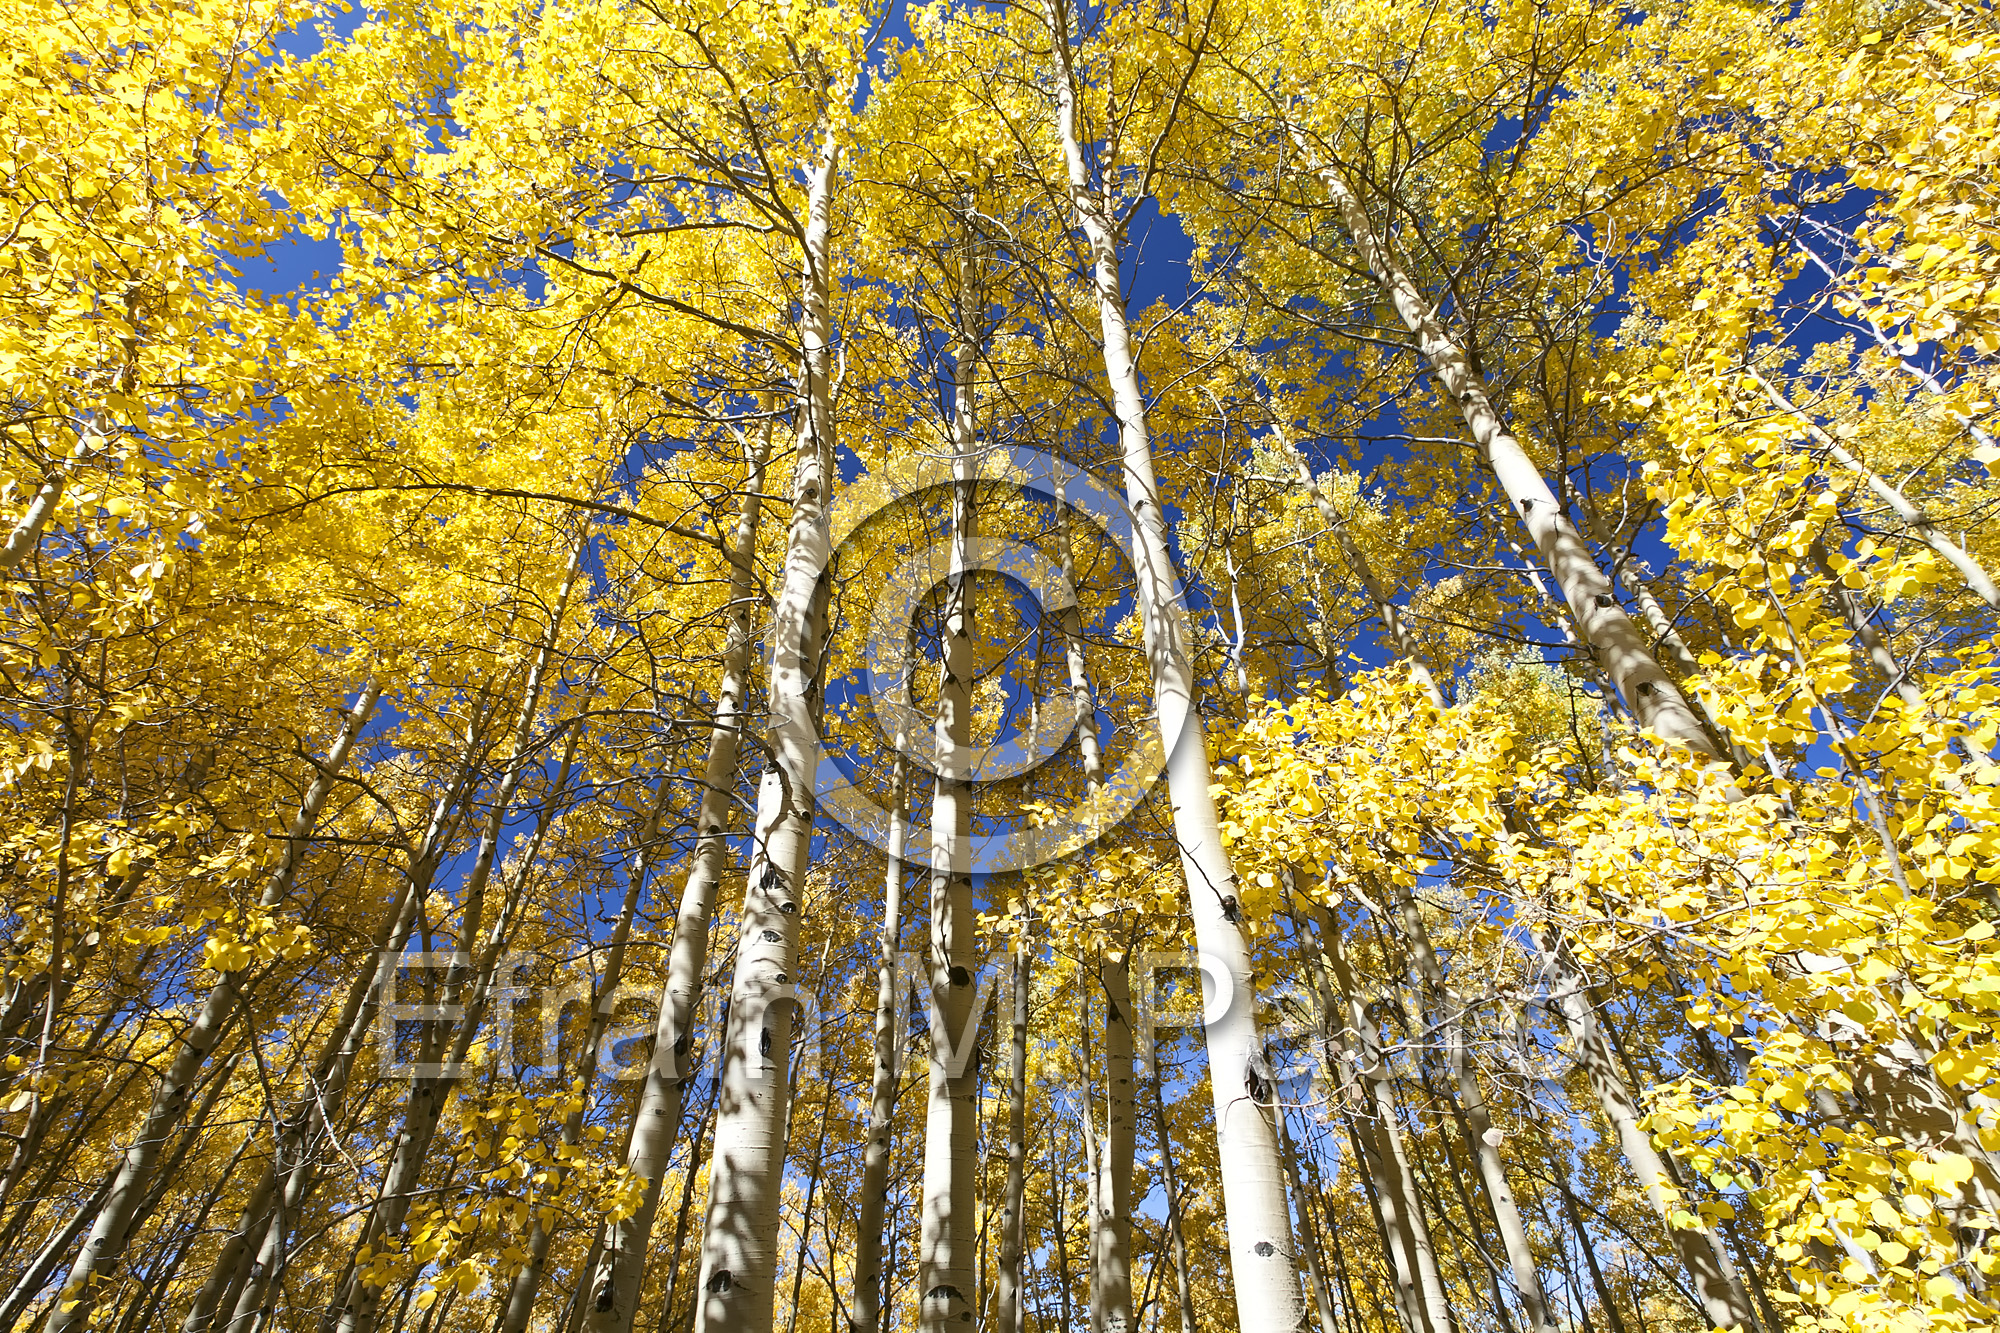 Aspen trees in Fall colors, Aspen Vista Trail, Santa Fe National Forest, New Mexico